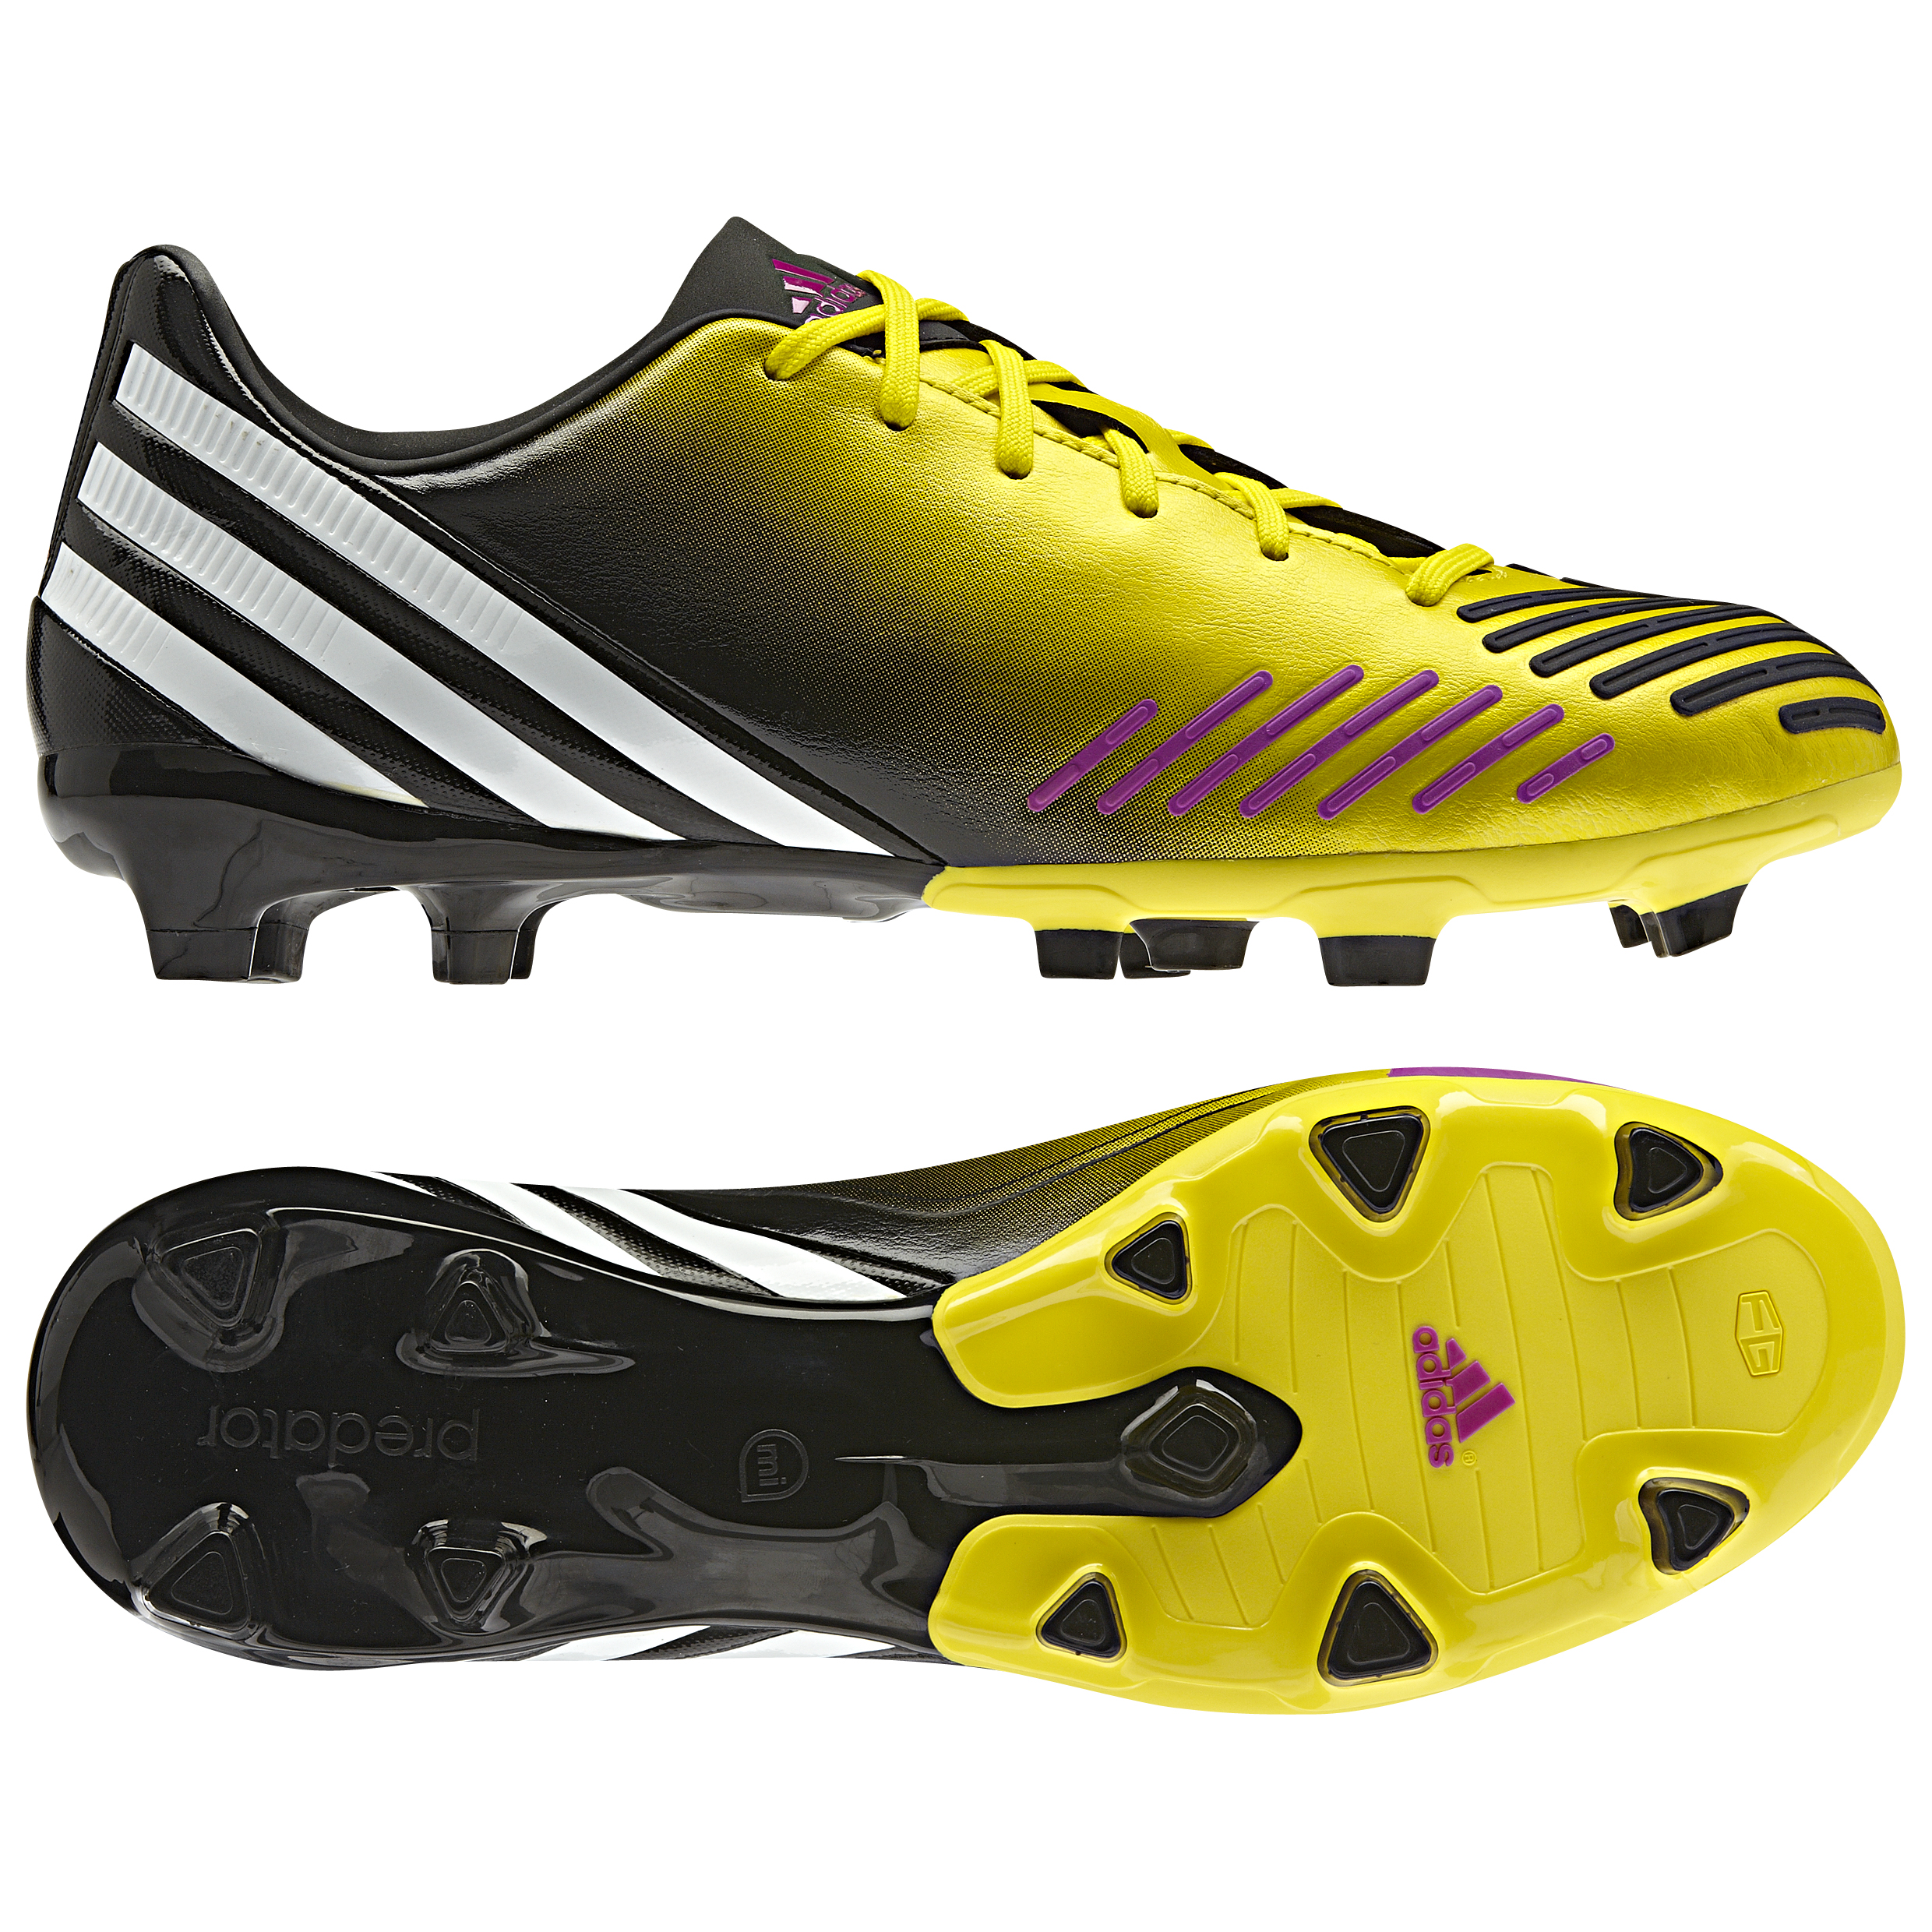 adidas Predator Absolion LZ TRX Firm Ground Football Boots - Vivid Yellow/Running White/Vivid Pink